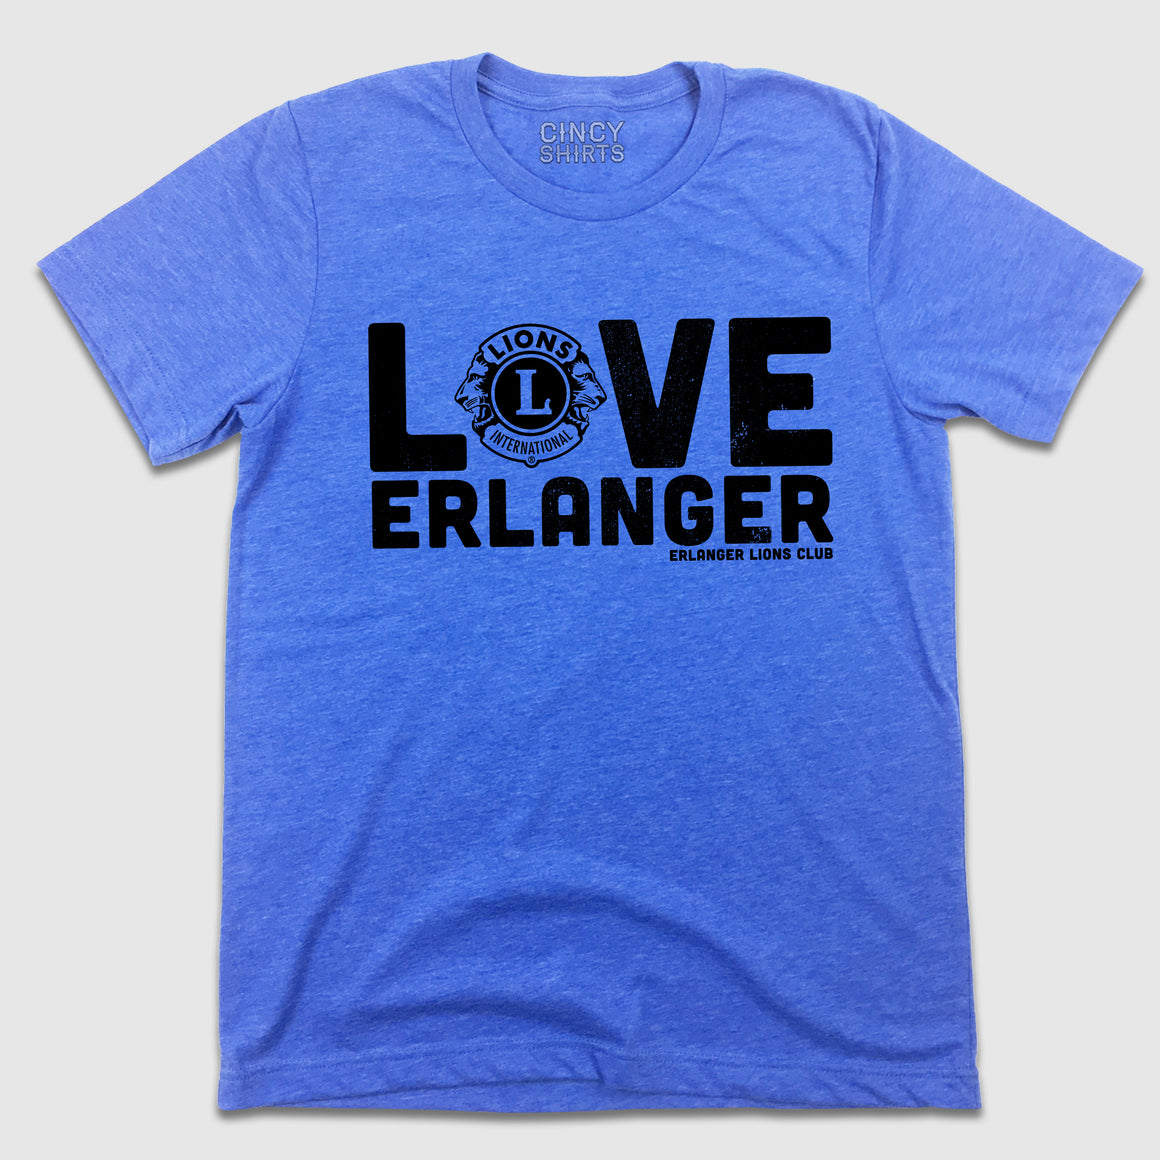 Love Erlanger - Lions Club - Cincy Shirts